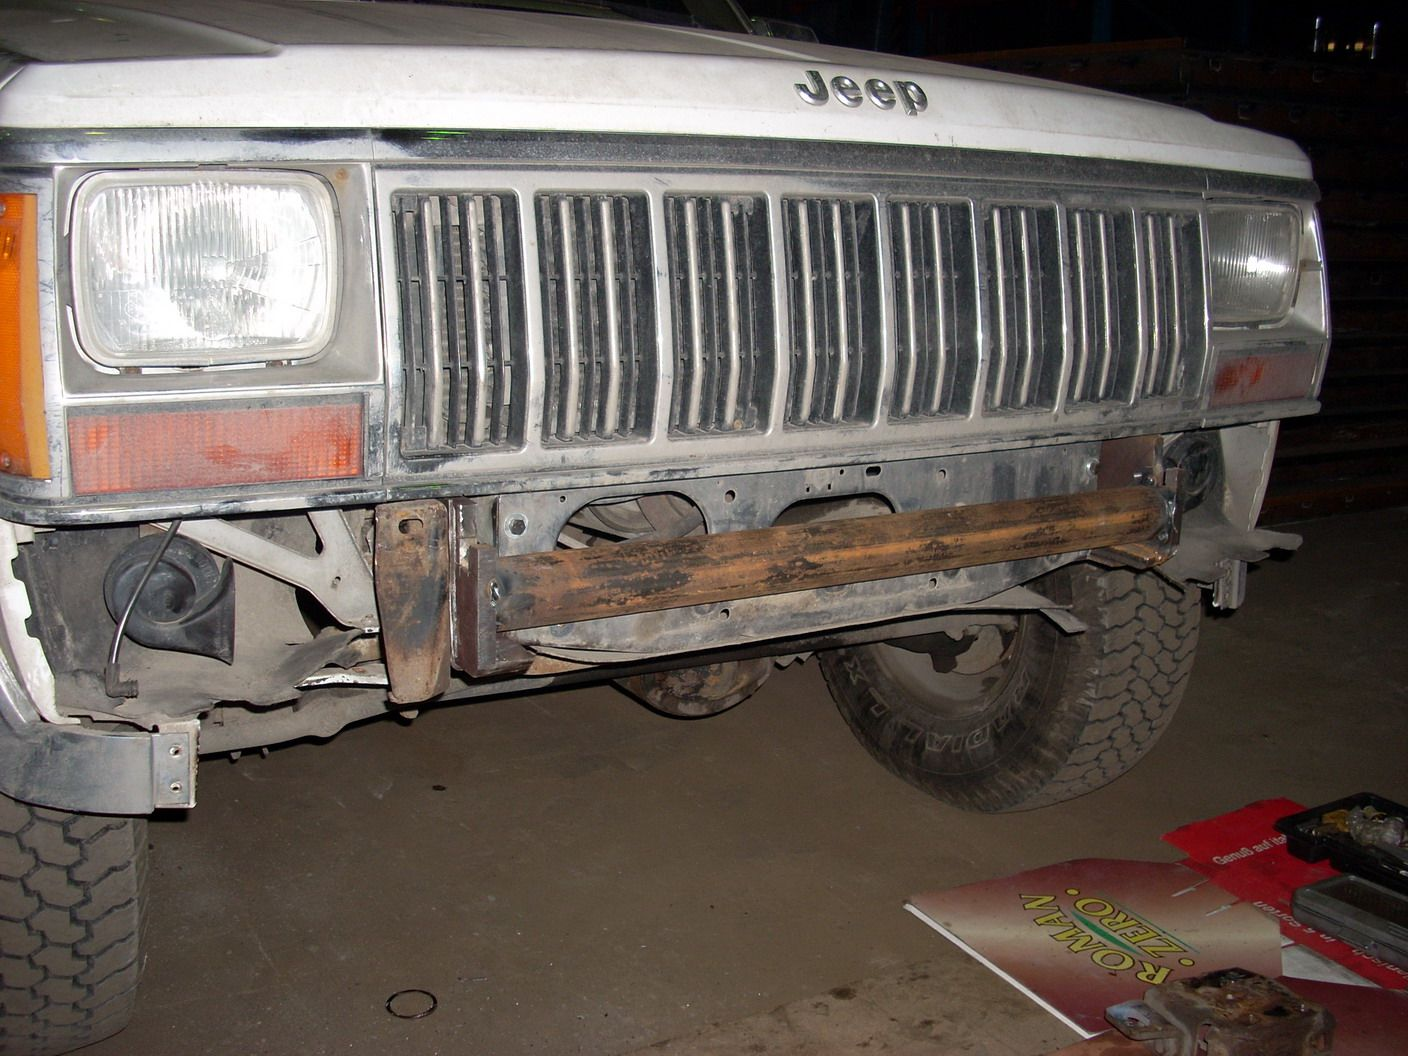 Xj Winch Behind Original Bumper 1999 Jeep Cherokee Forum Both Sides Were Connected With Trick Walled Tube Diameter 60mm